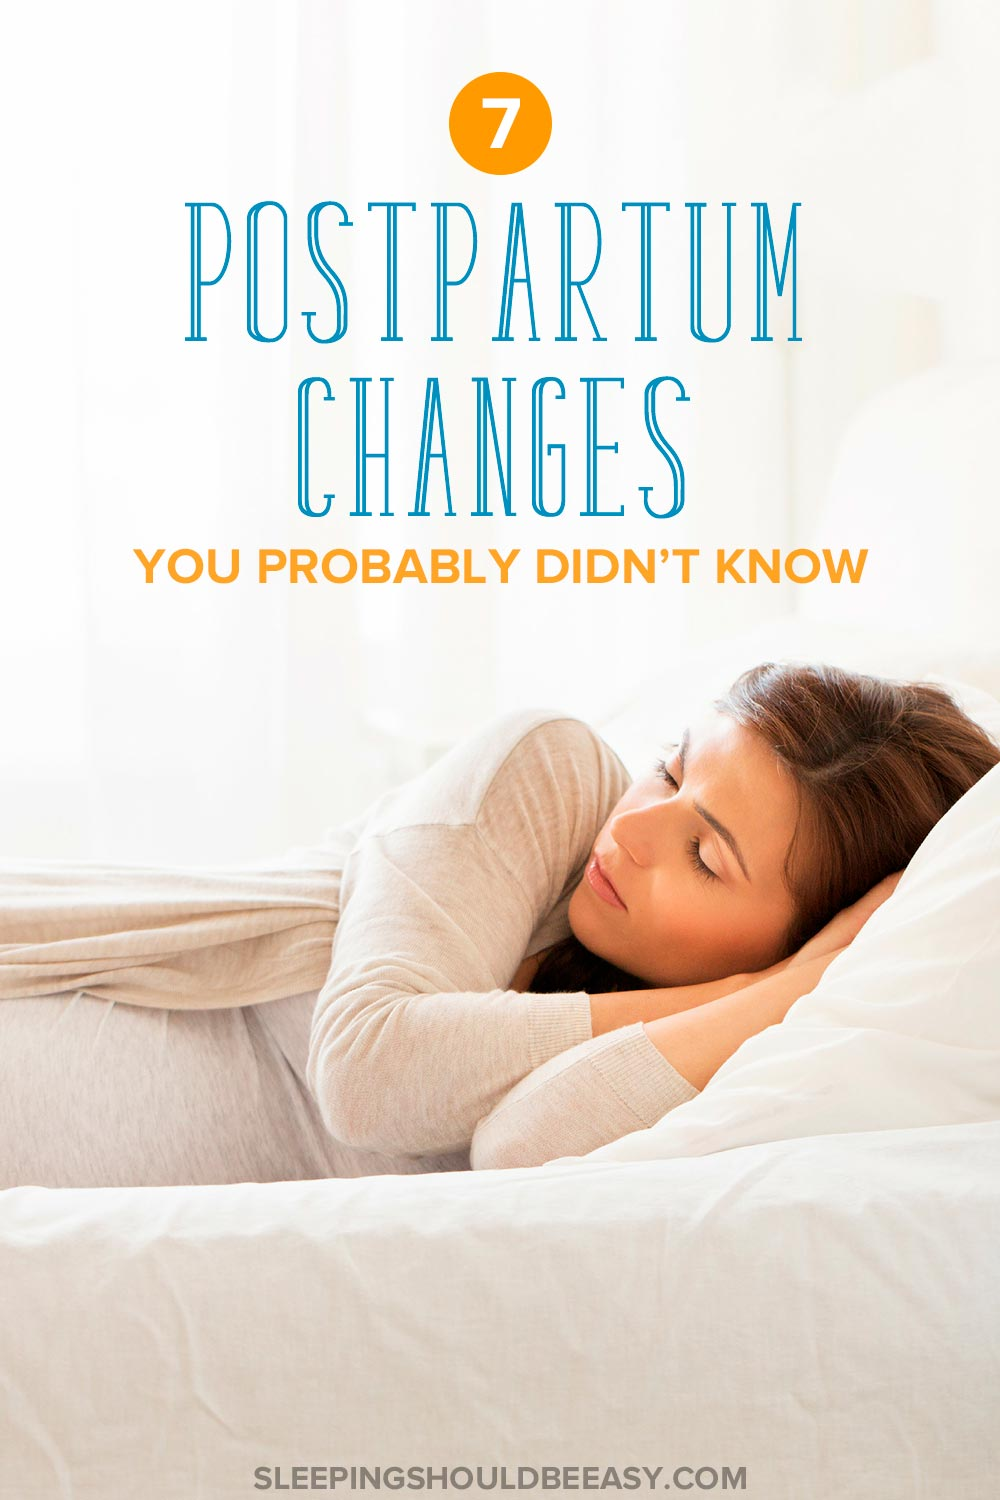 7 postpartum changes you probably didn't know